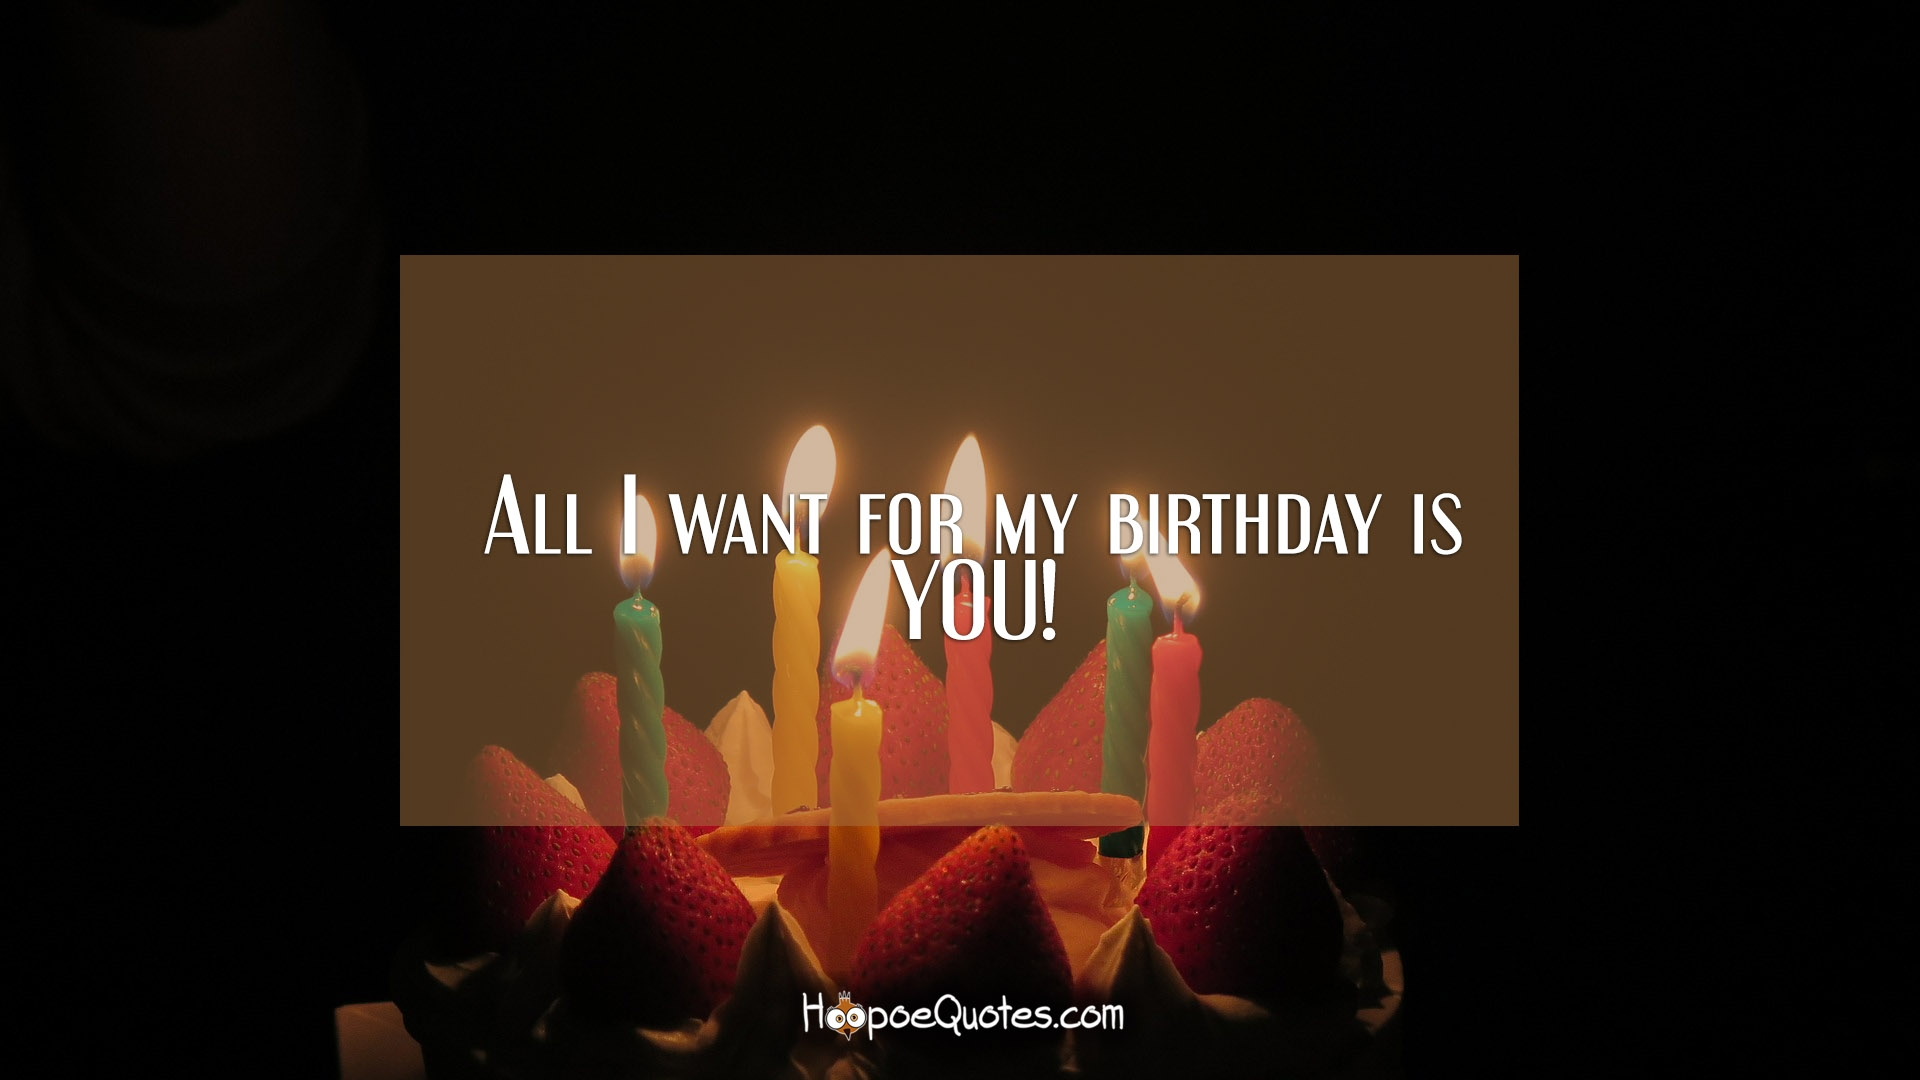 My Birthday Is Coming Soon Wallpaper Thank You Message For Birthday Wishes Download 1920x1080 Wallpaper Teahub Io